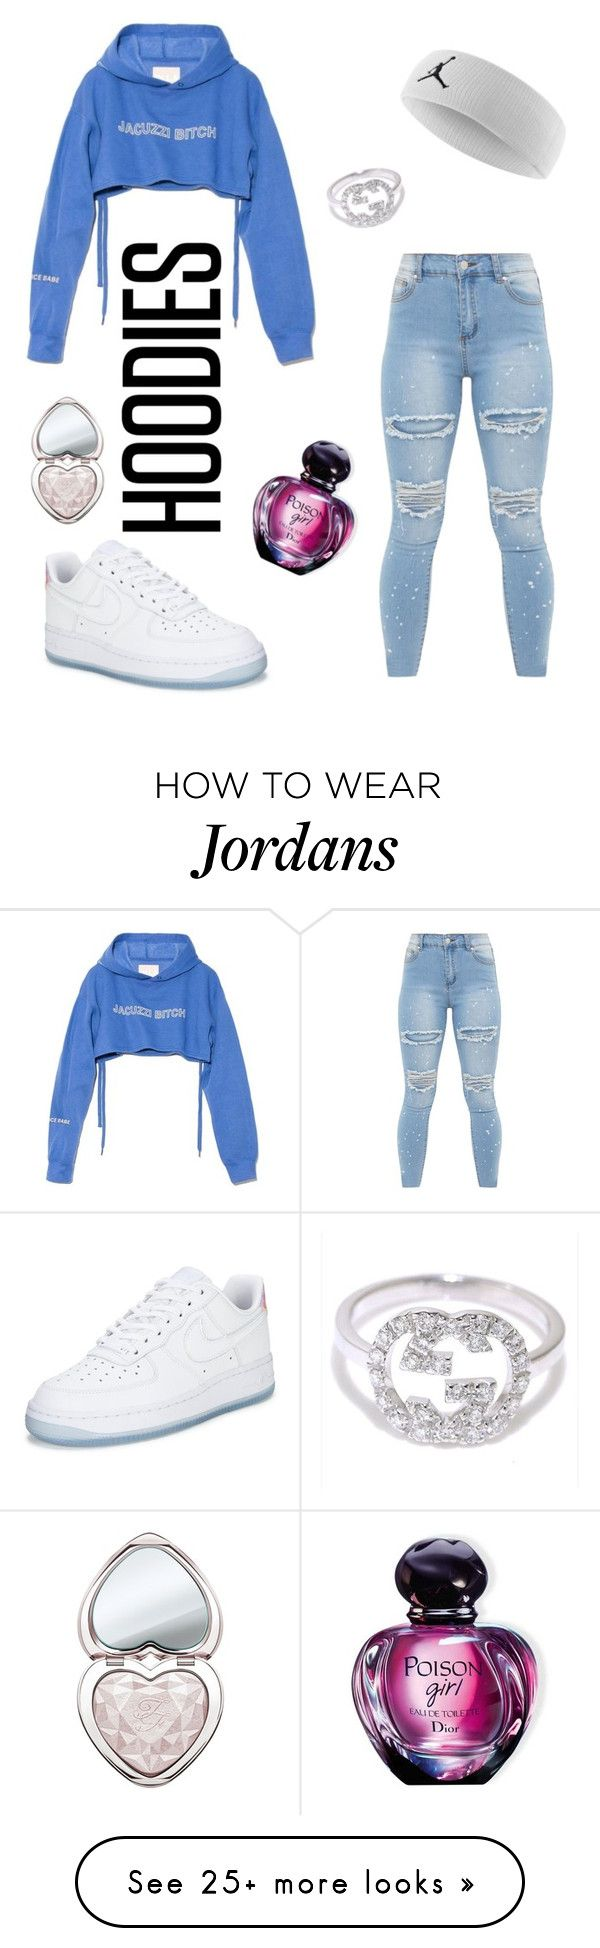 """hood"" by danielahoney on Polyvore featuring NIKE, Jacuzzi, Gucci, Too Faced Cosmetics, Christian Dior and Hoodies"